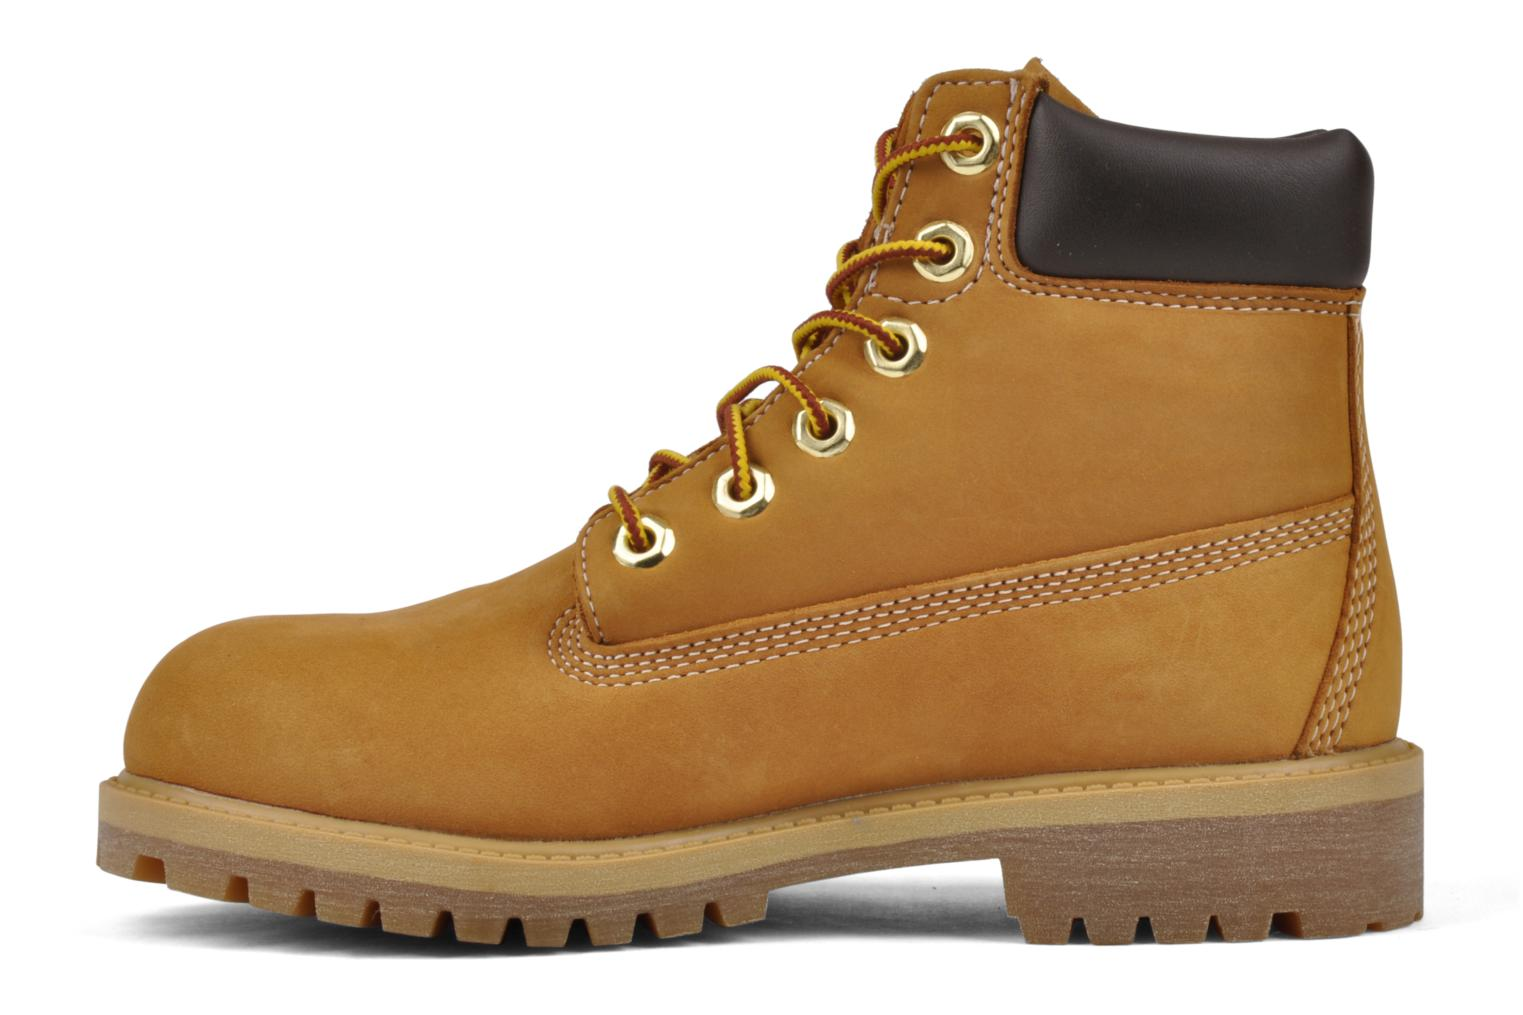 Bottines et boots Timberland 6 In Premium e Beige vue face